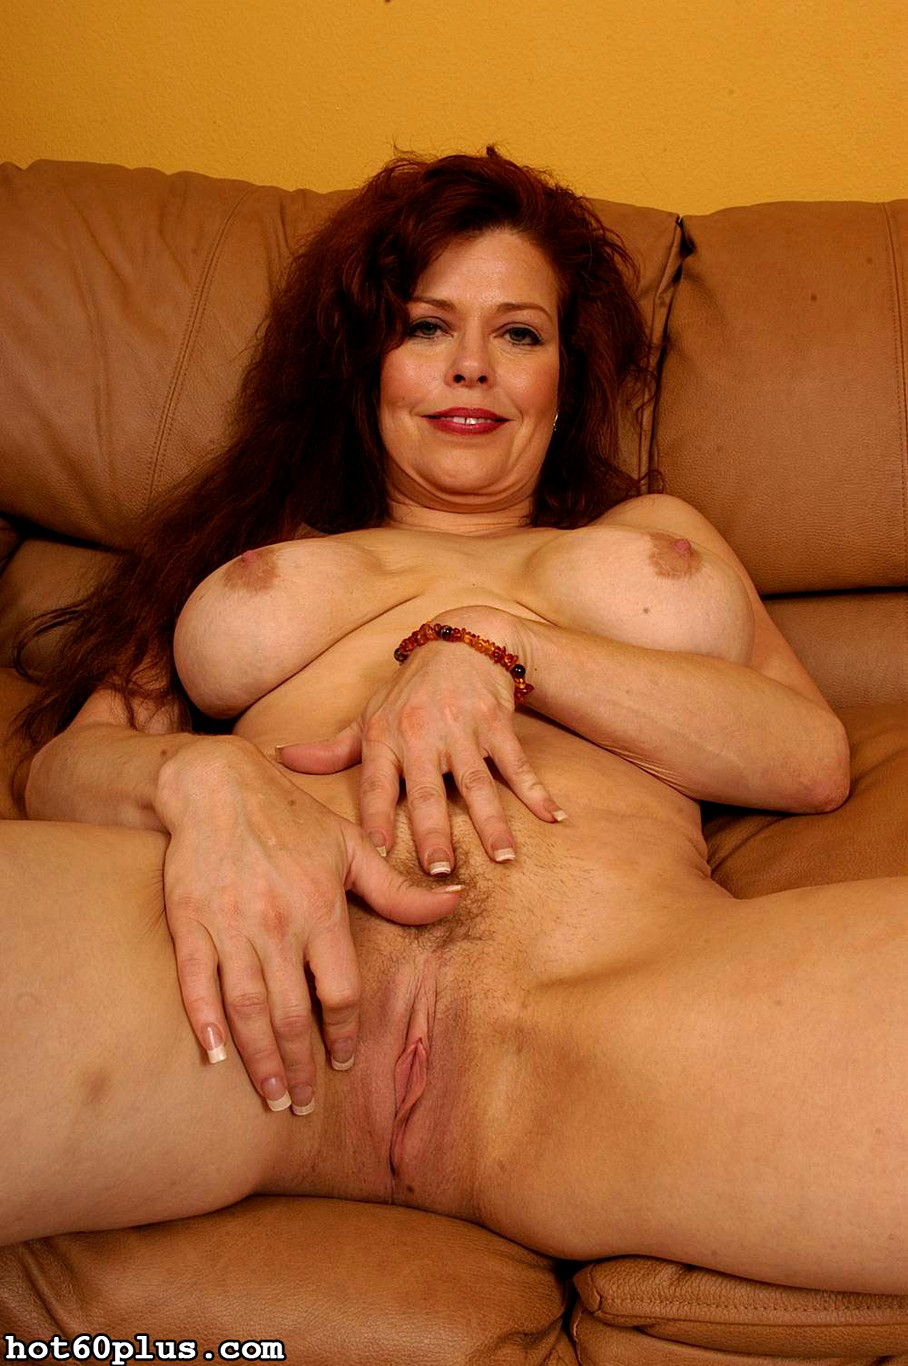 Free natural redhead movies+hairy-9357